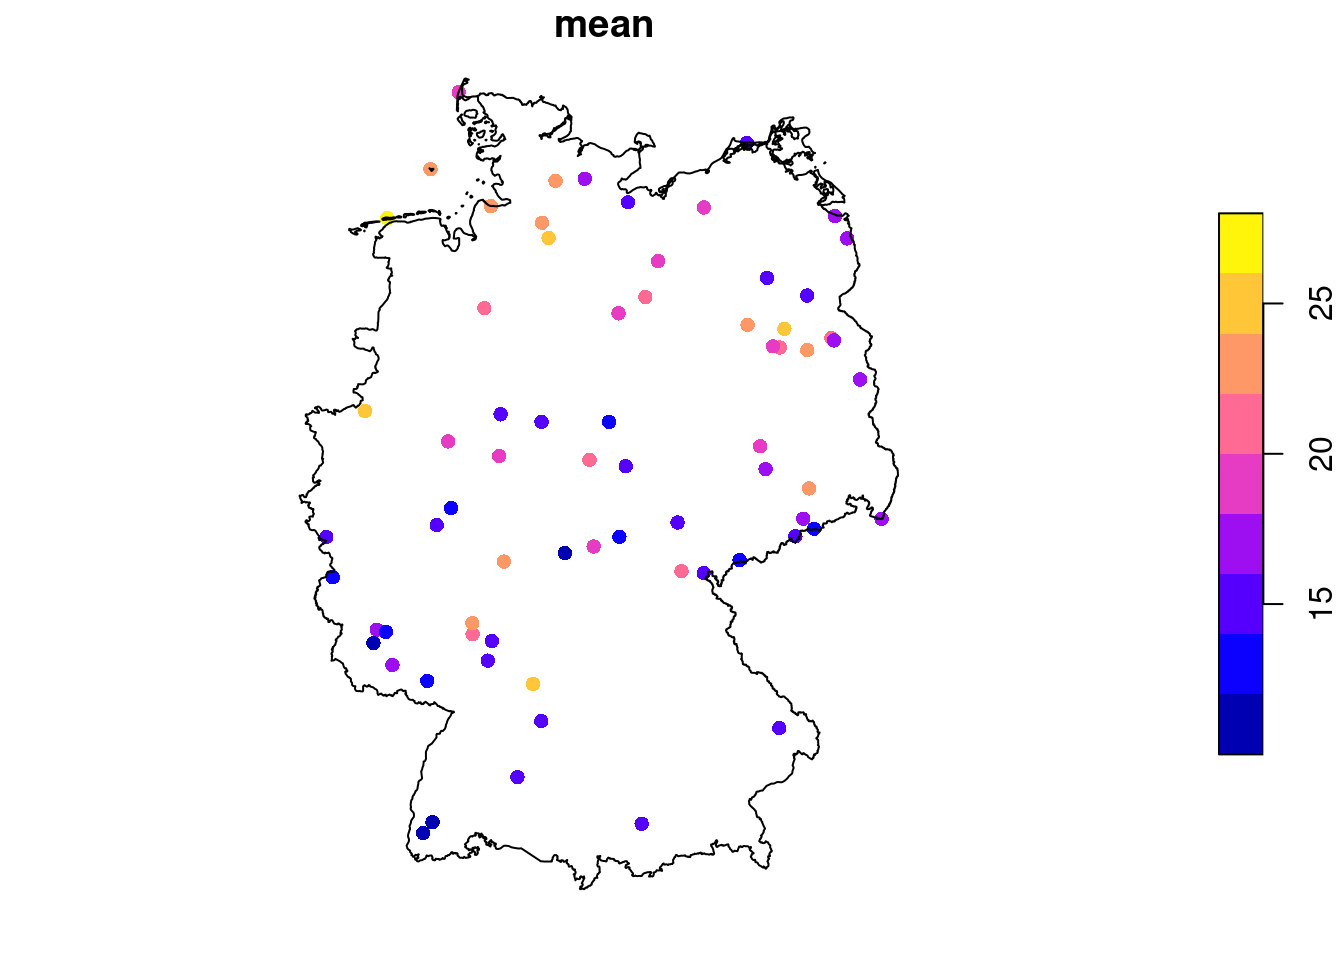 locations of PM$_{10}$ measurement stations, showing mean values